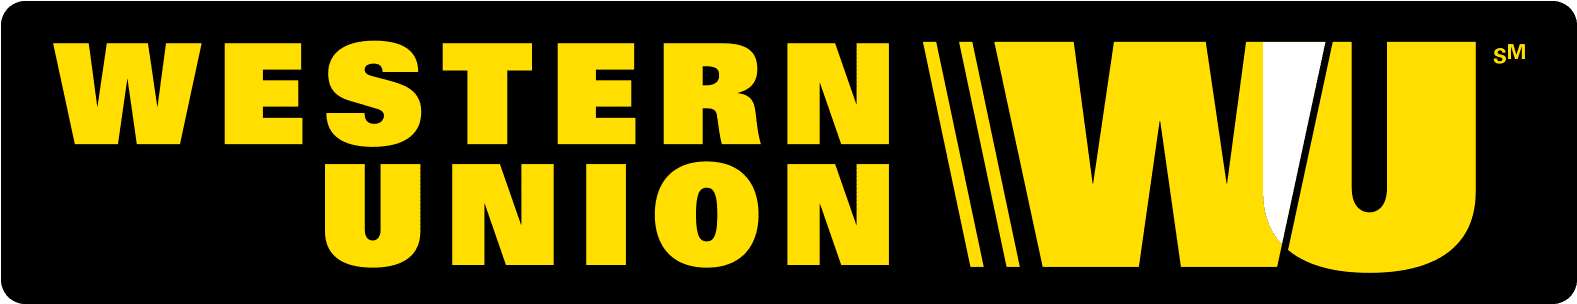 toppng.com-western-union-logo-high-res-1577x304